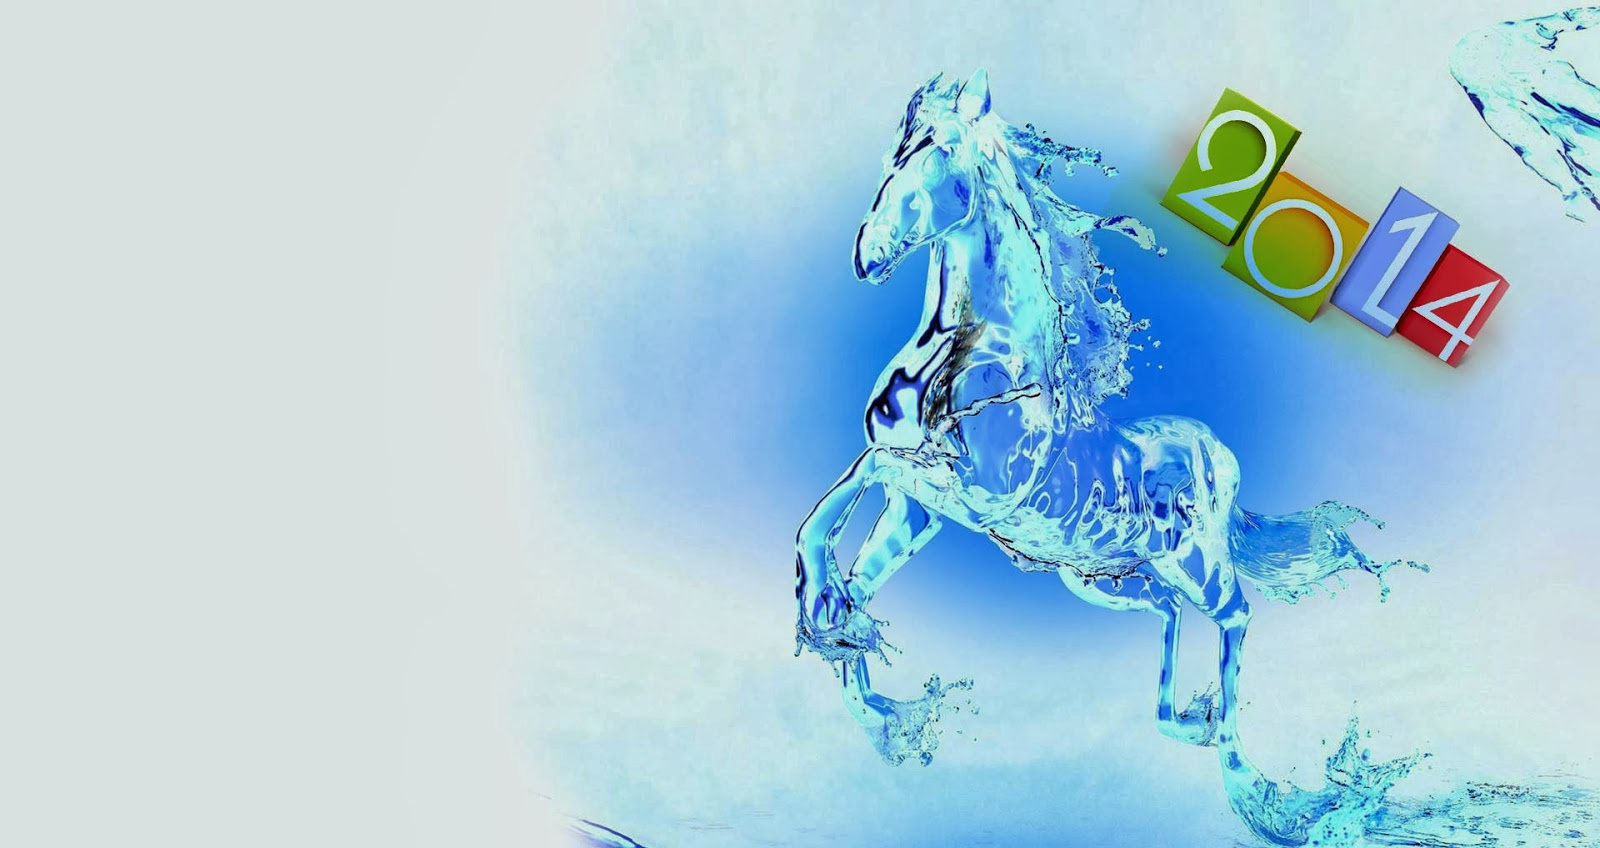 2014 Wallpapers : Chinese Zodiacastrology Signs Download ...